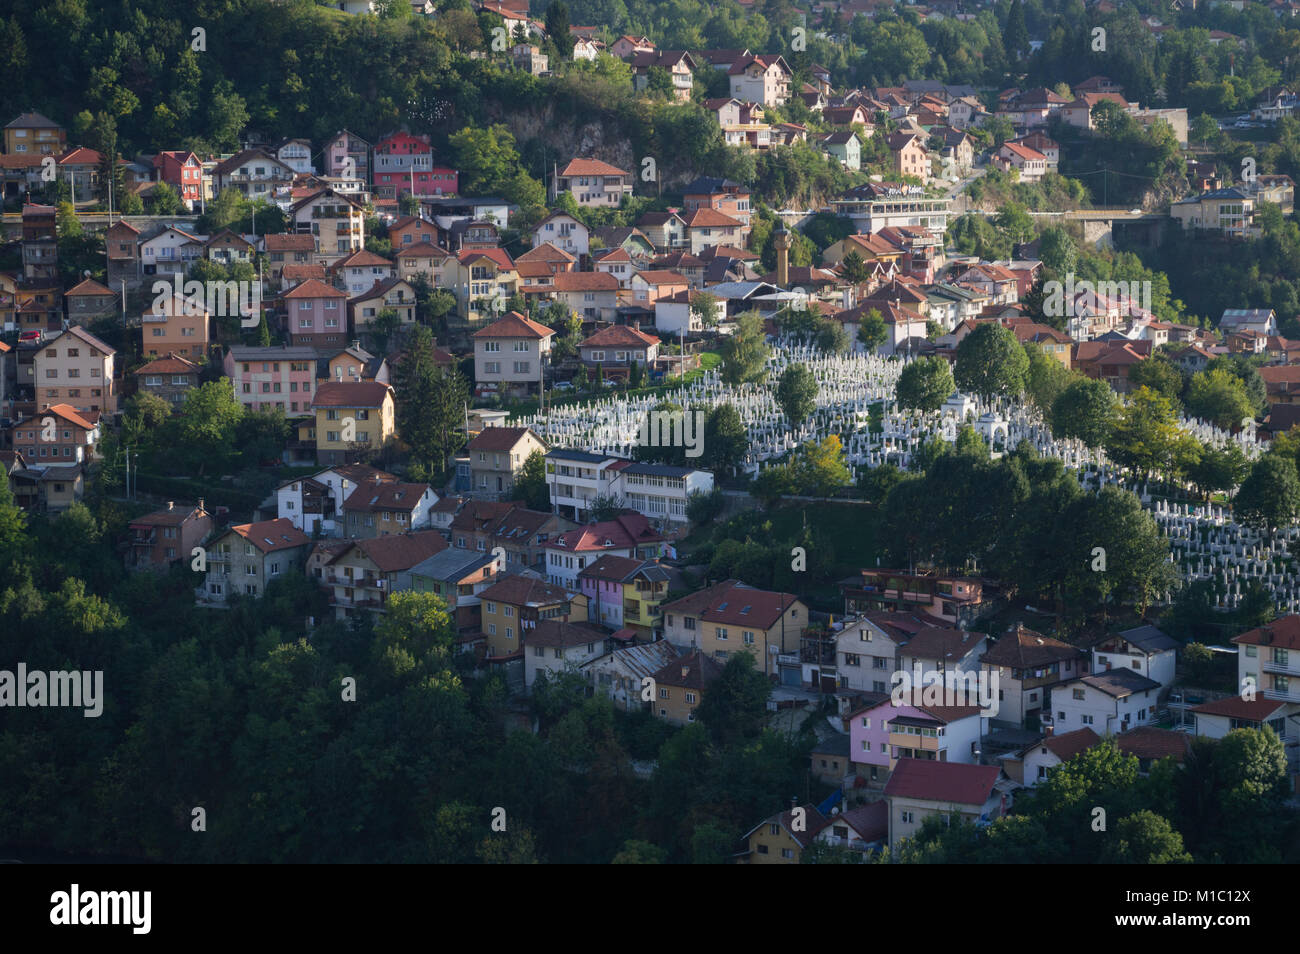 Panoramic Shot of Sarajevo Cityscape from Lookout Point Yellow Bastion, Bosnia and Herzegovina - Stock Image